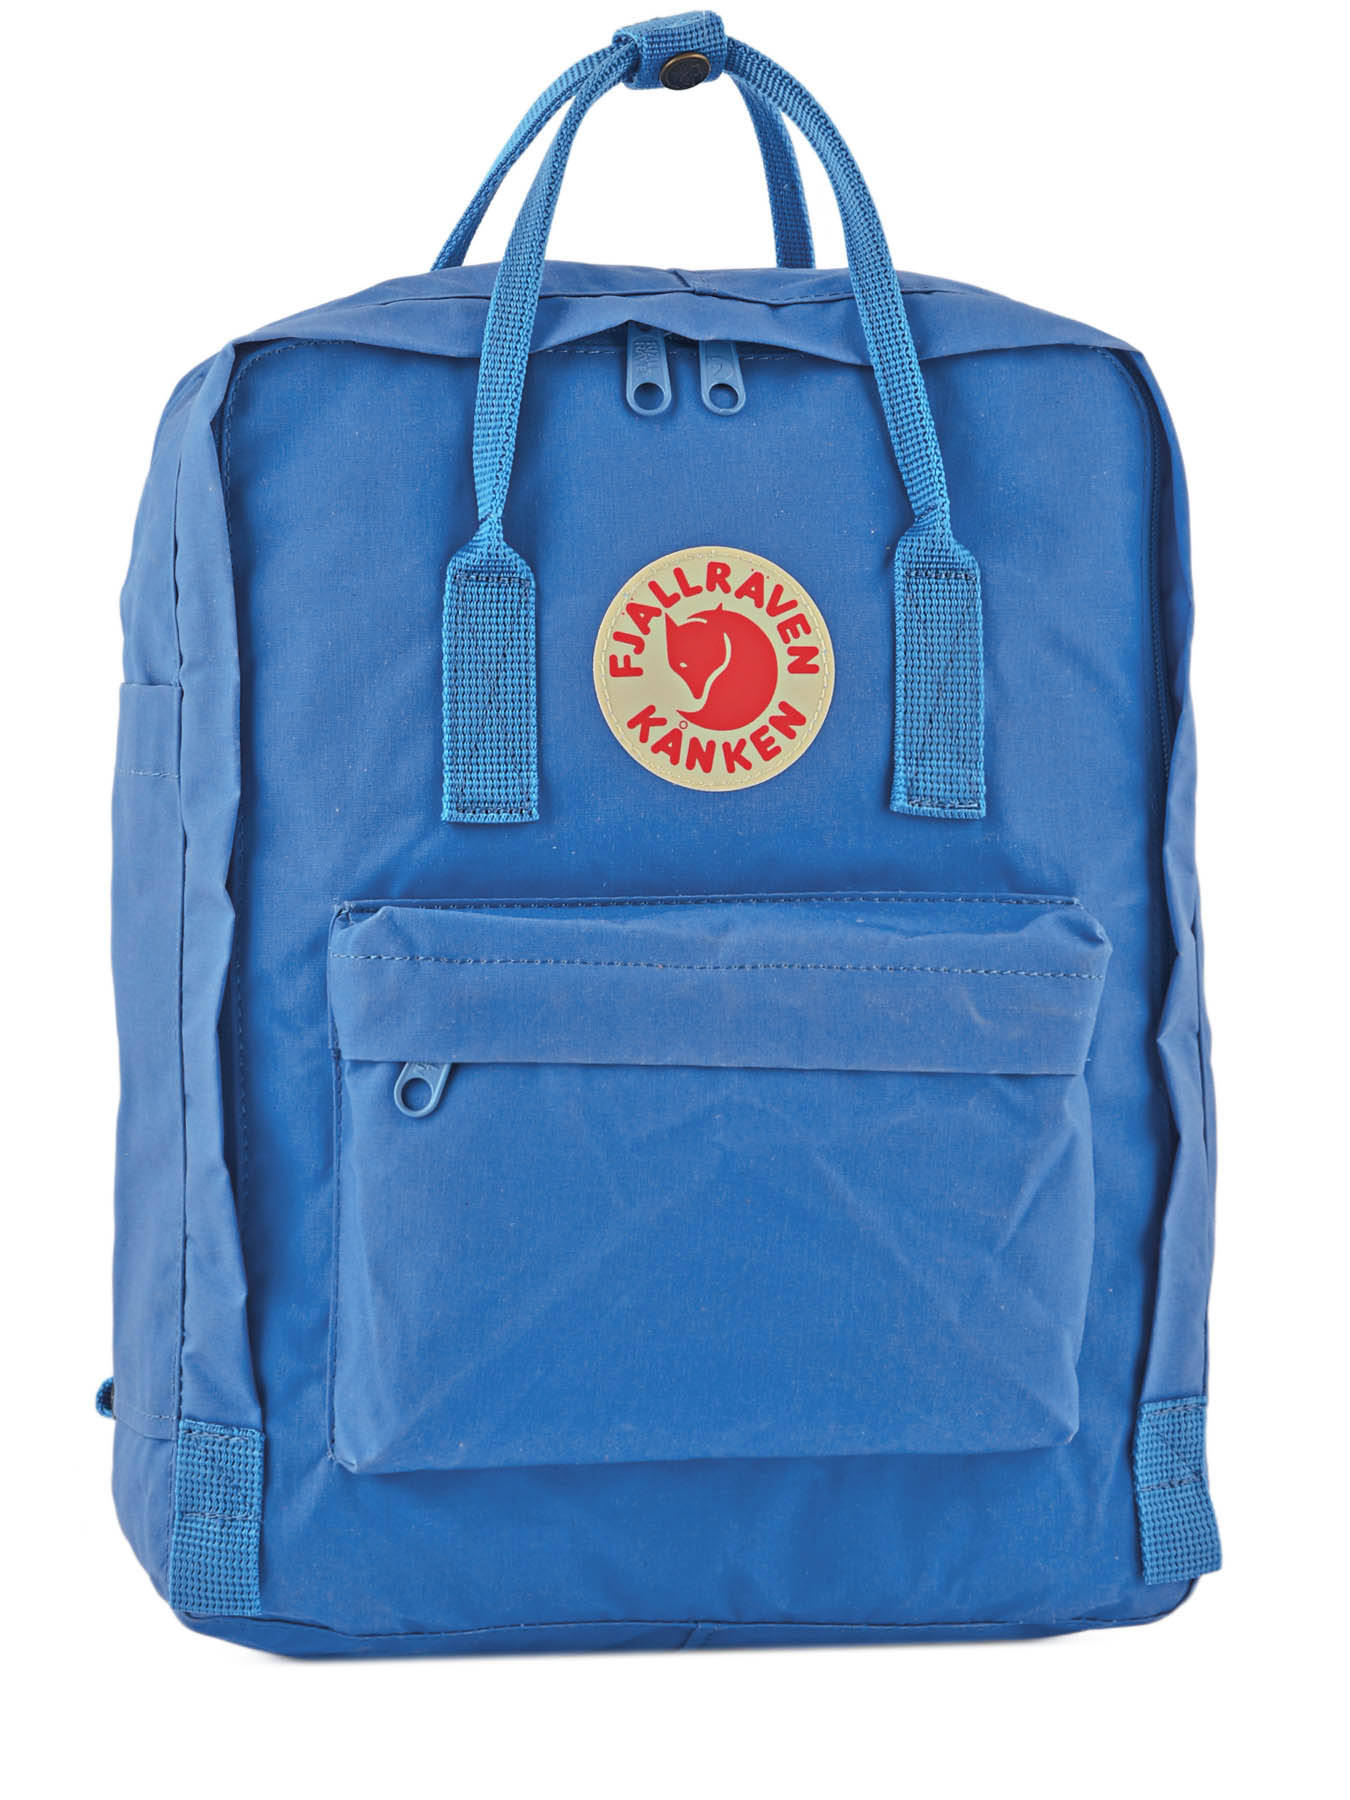 sac dos fjallraven kanken un blue en vente au meilleur prix. Black Bedroom Furniture Sets. Home Design Ideas